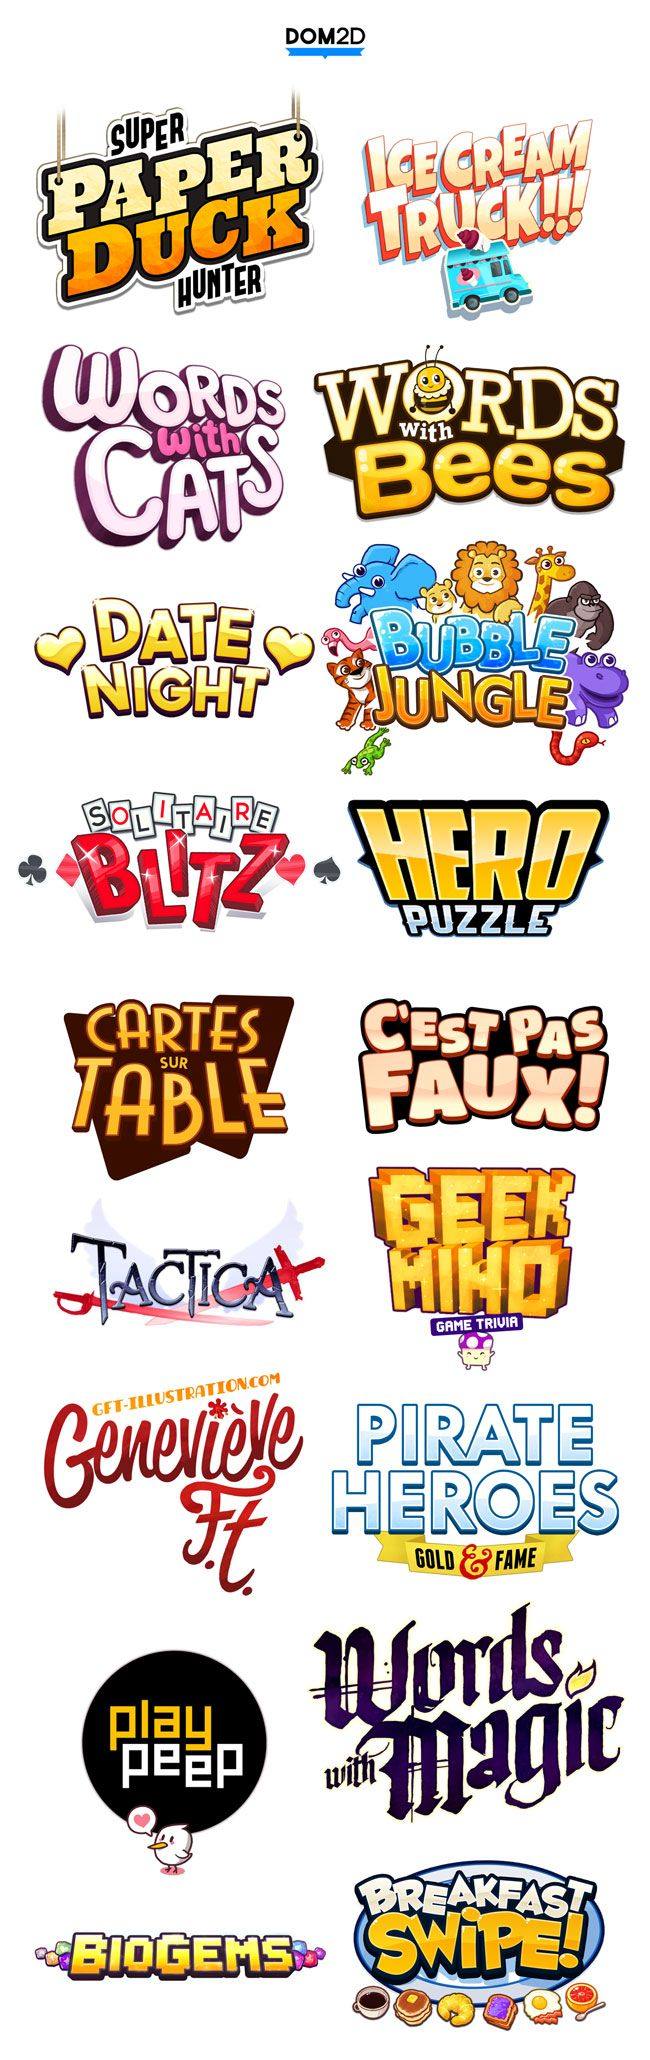 Logos by dom2d.deviantart.com on @DeviantArt